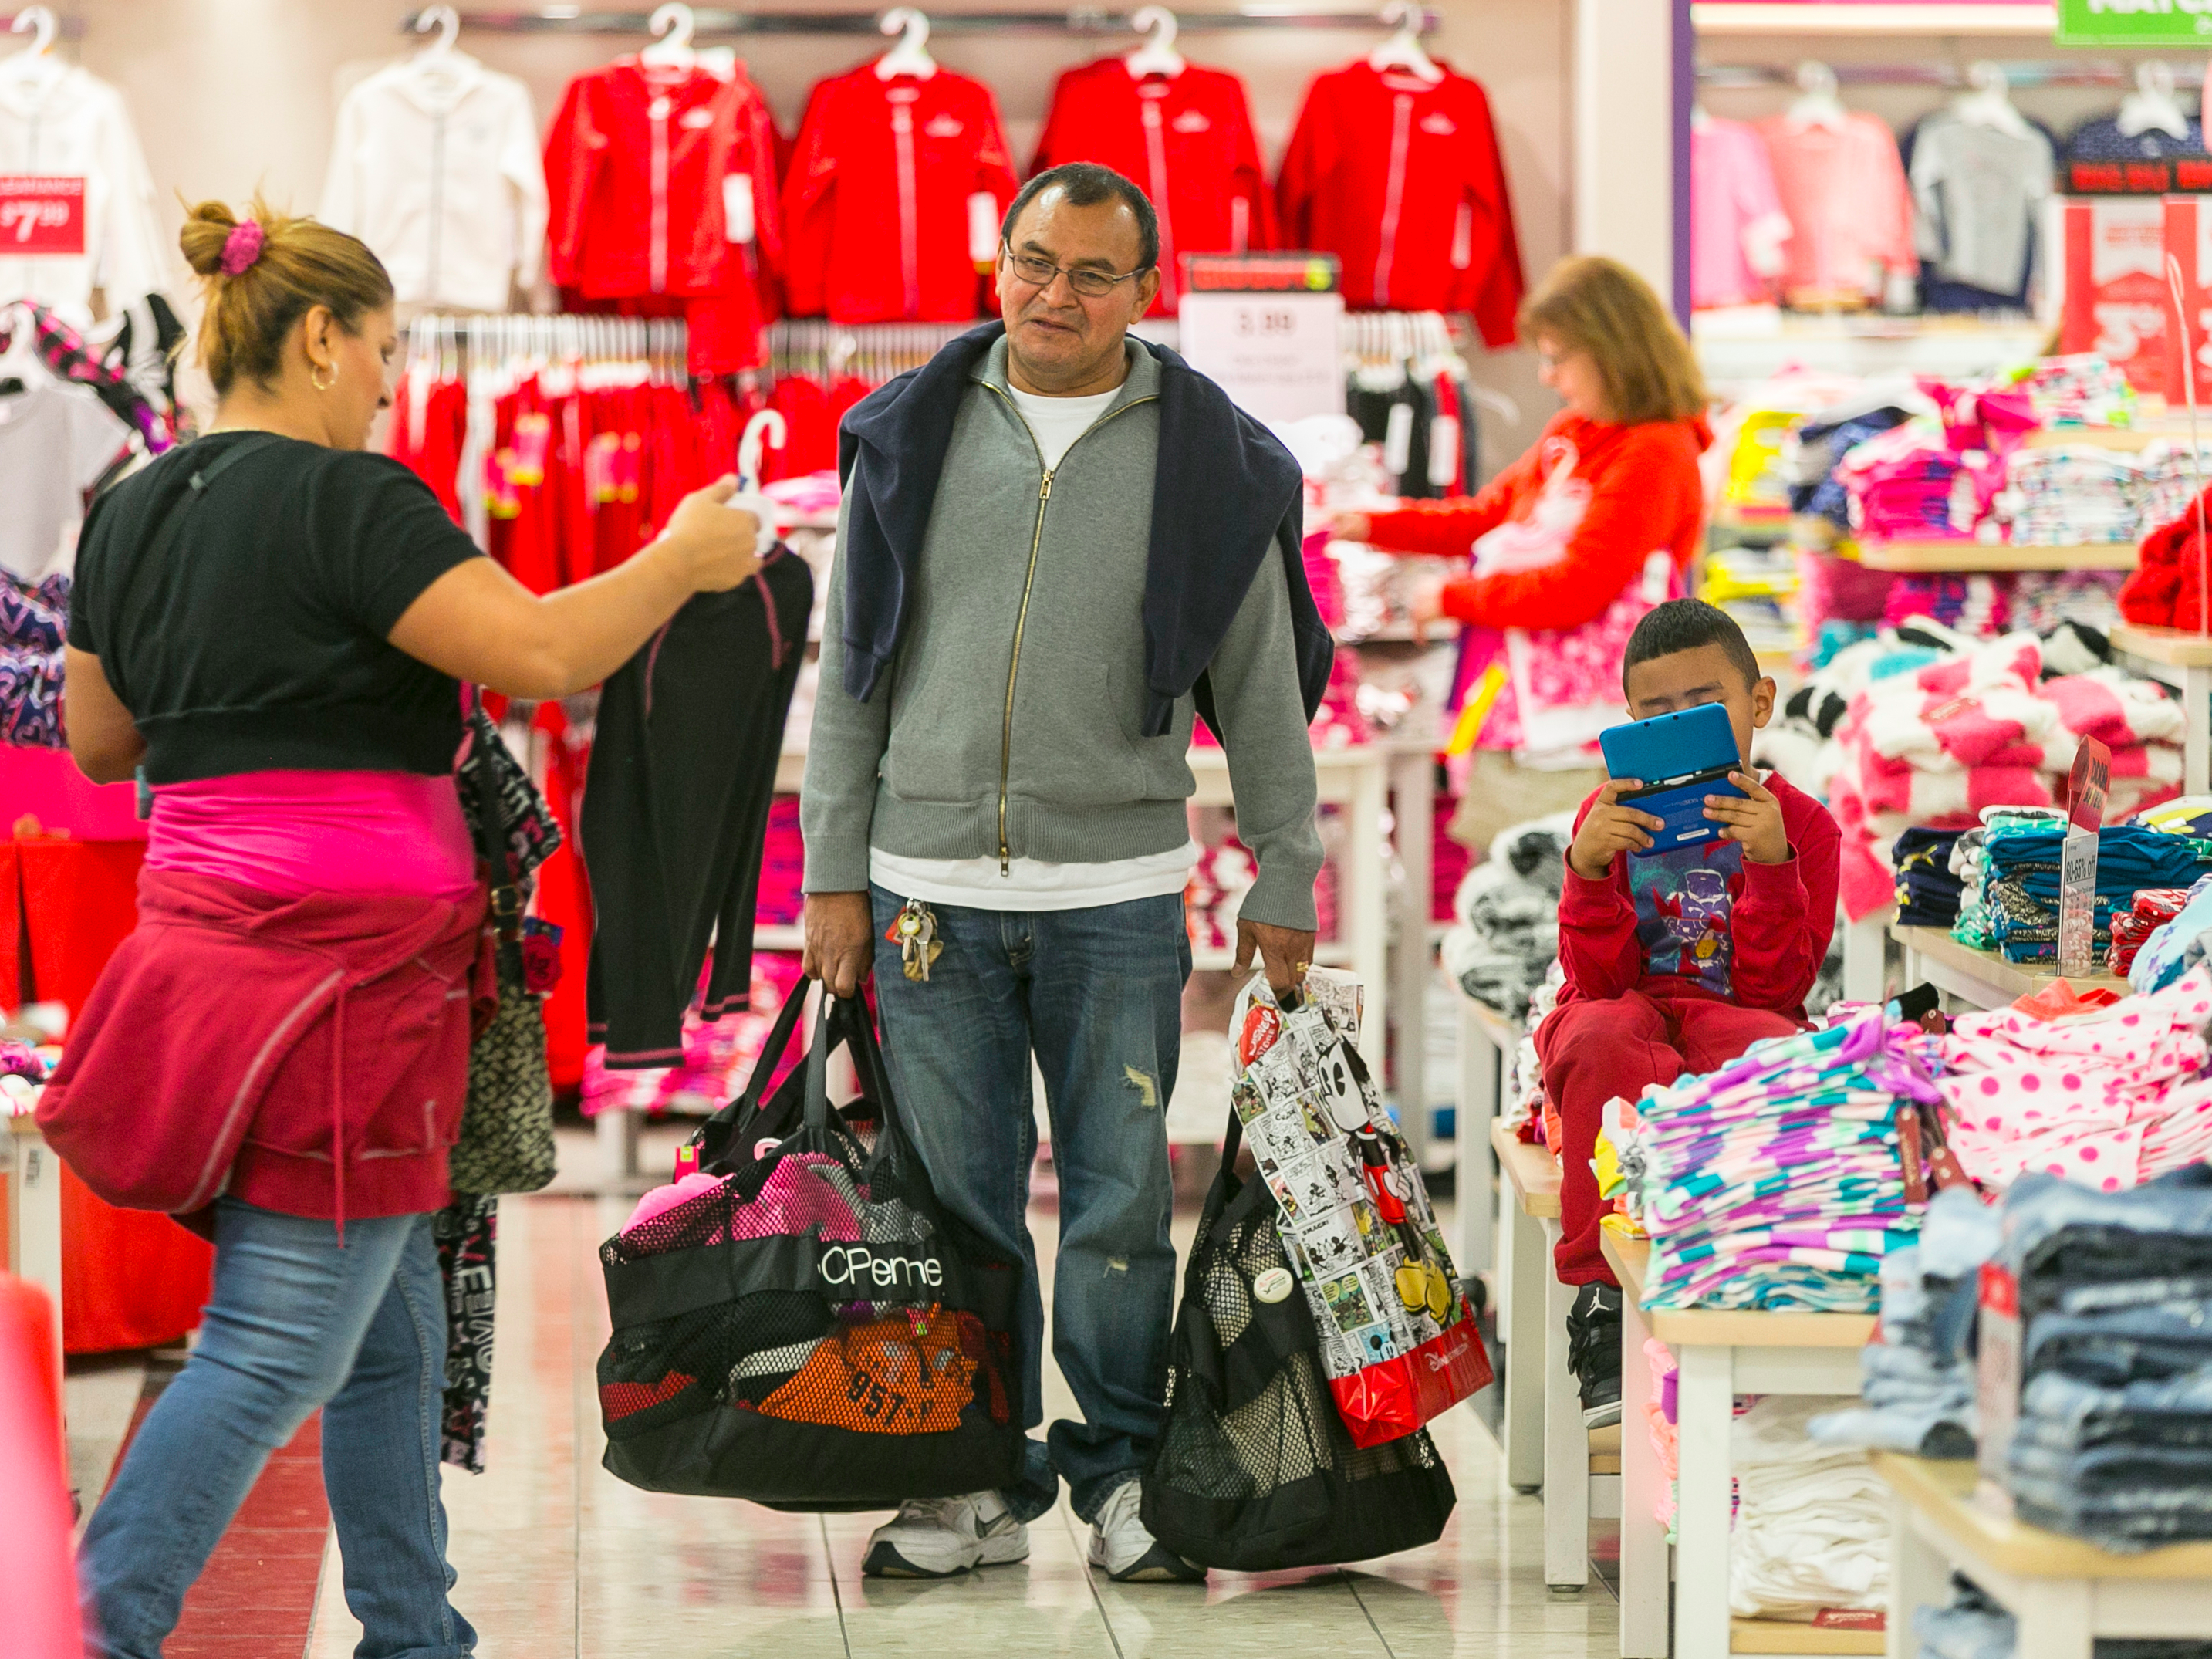 386a6409db6a9 JCPenney is closing 140 stores — see if your store could be one of them